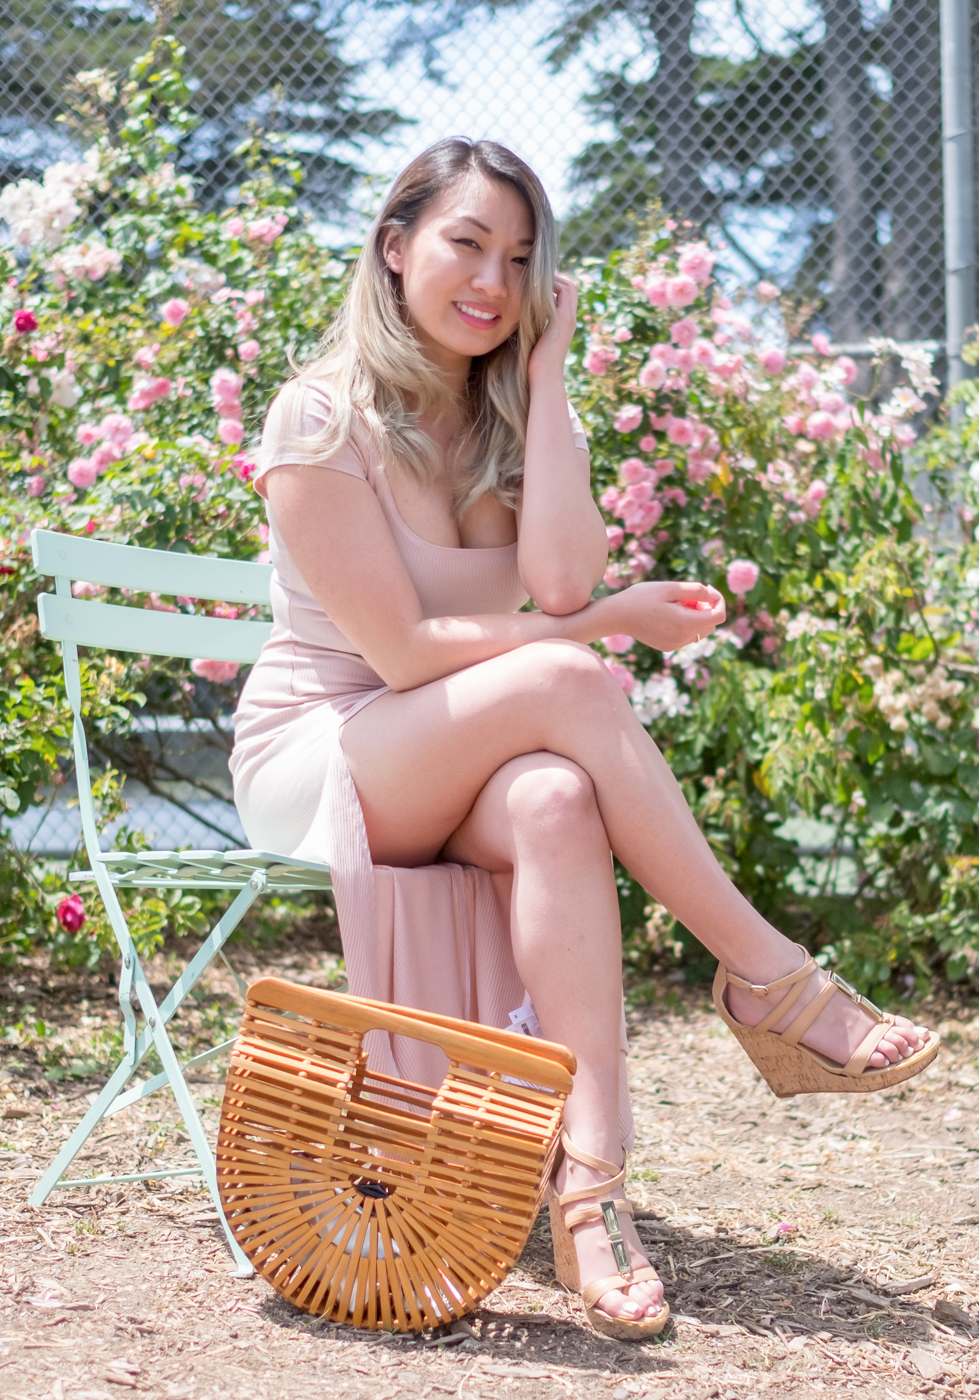 Reformation Harlen Dress in Blush | The Chic Diary